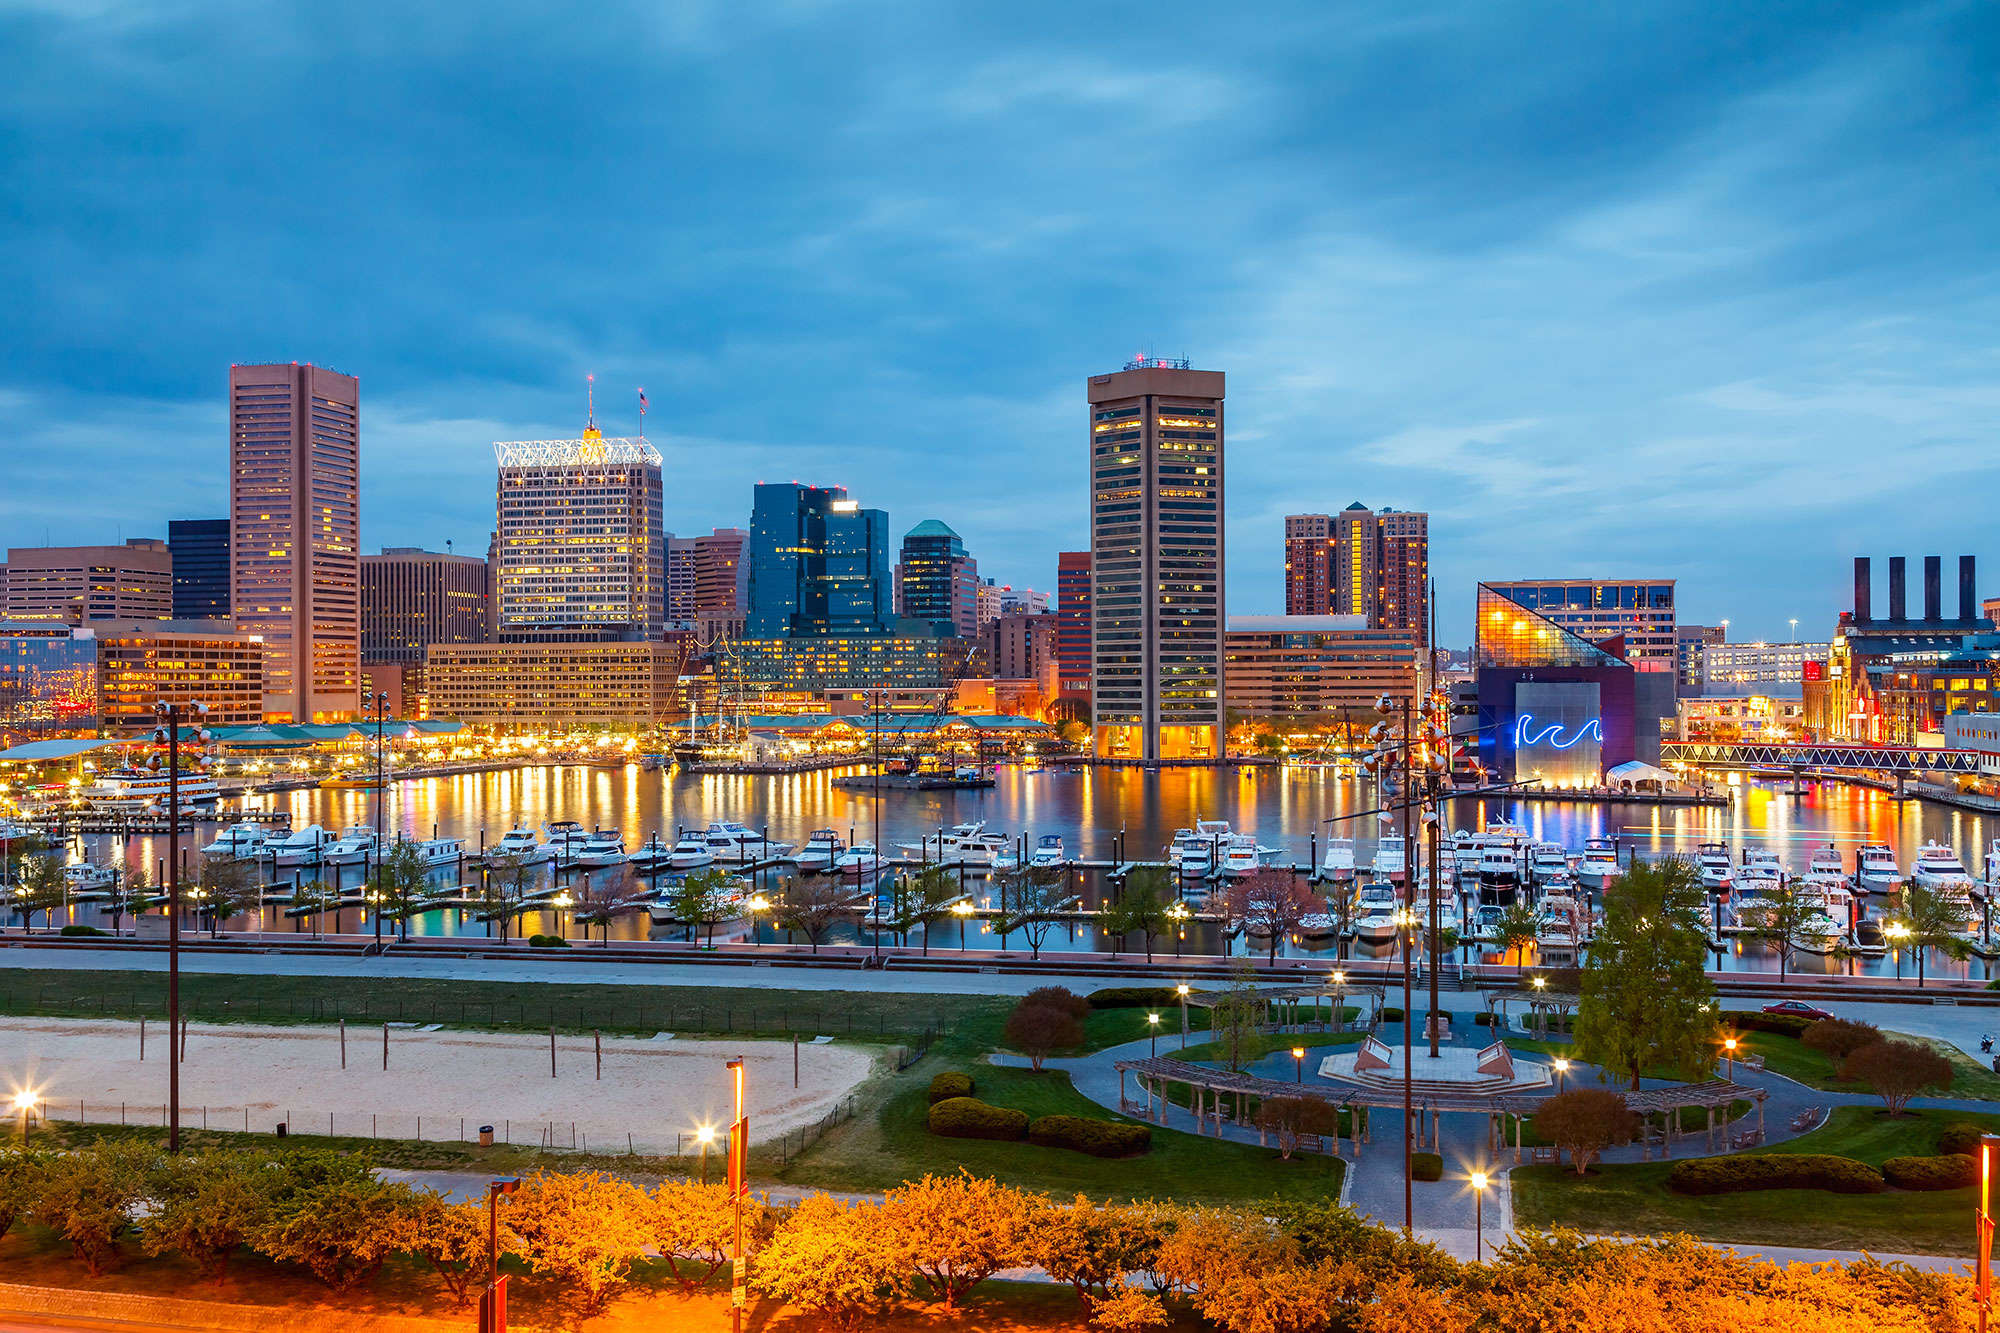 10. Baltimore, Maryland